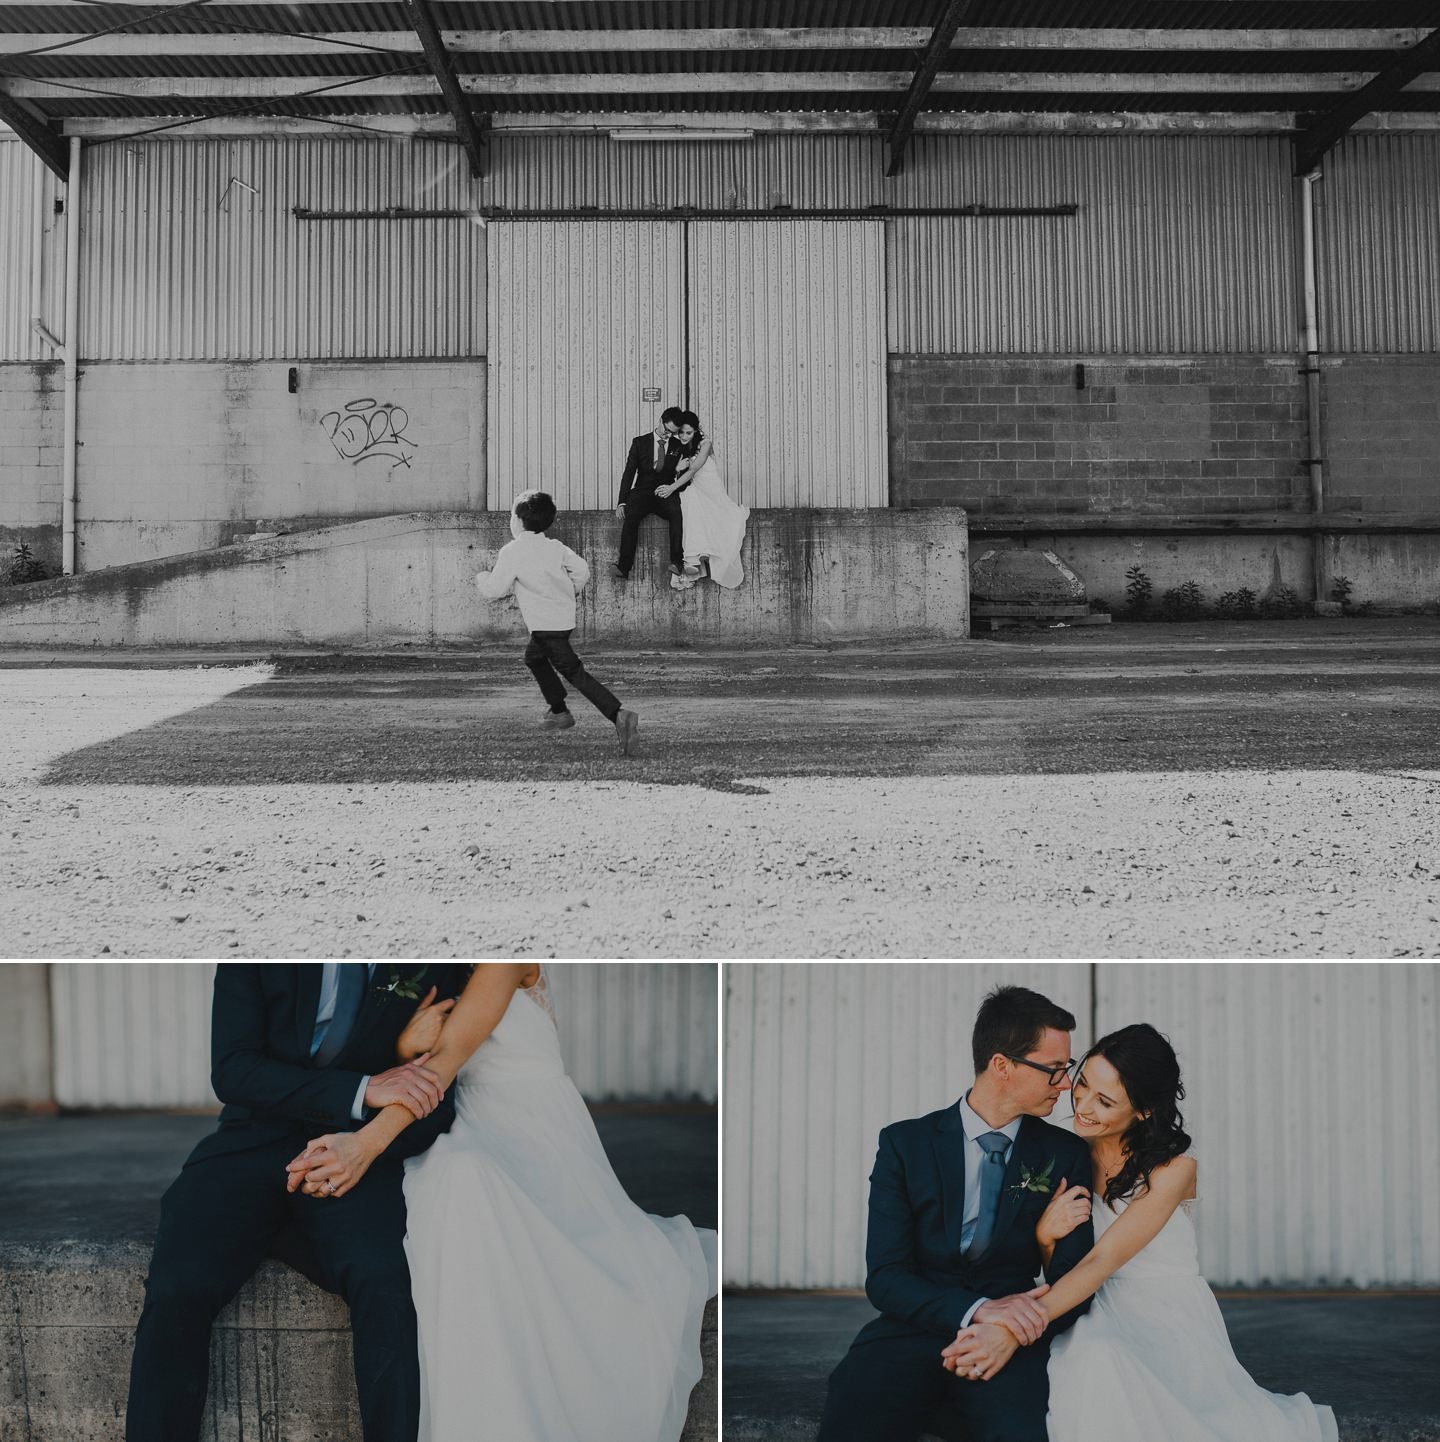 Industrial wedding venues